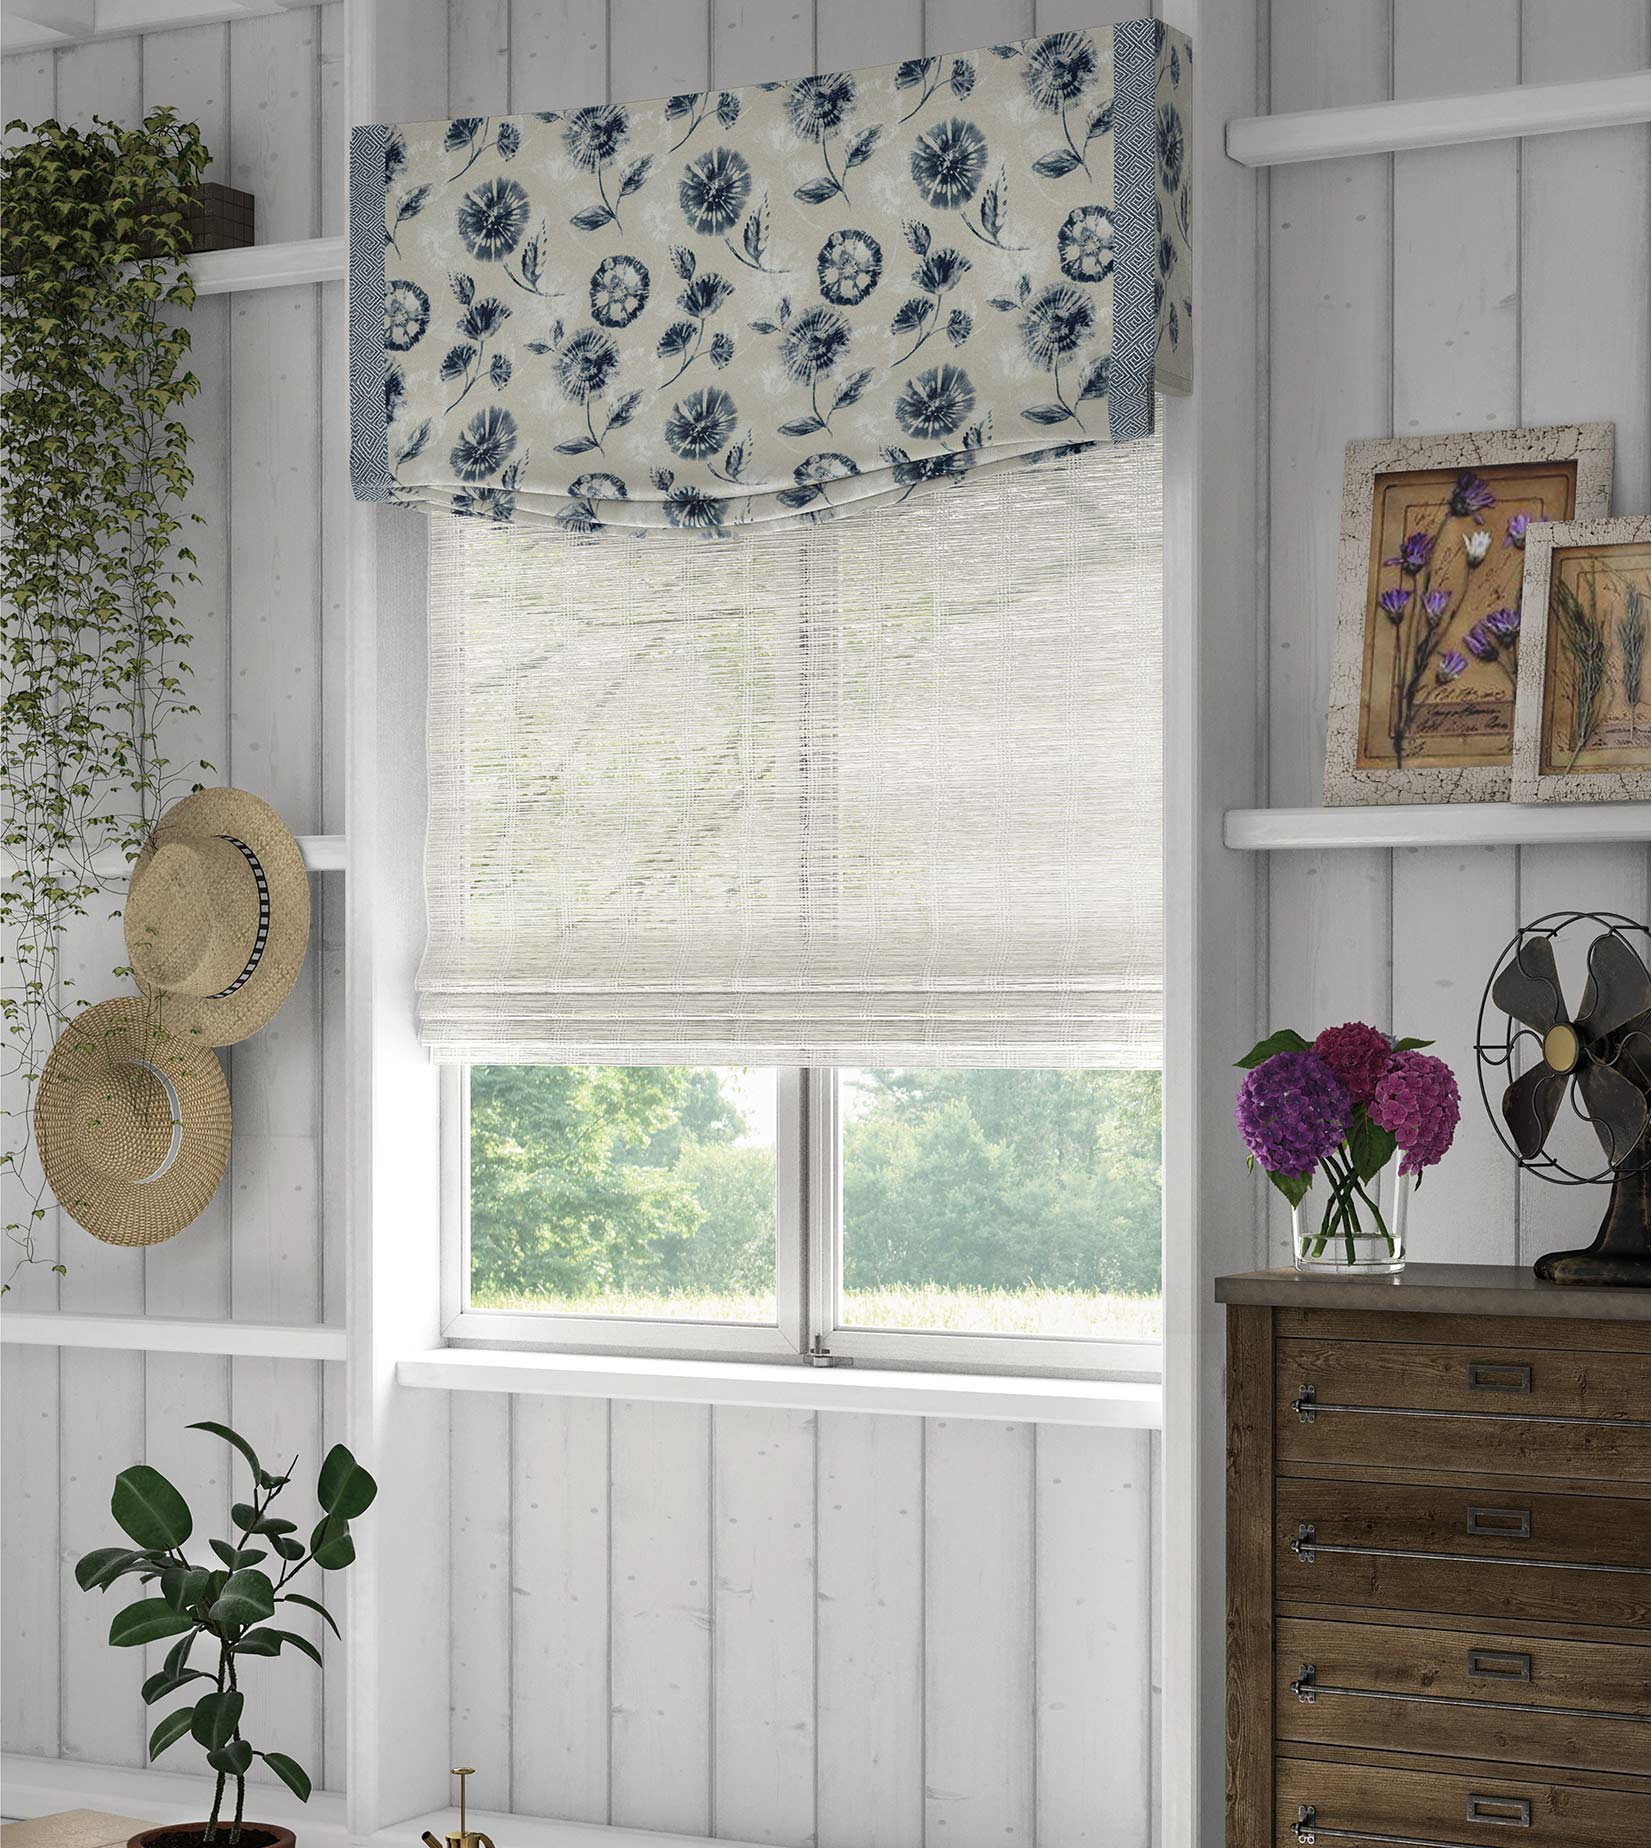 A custom fabric valance in a blue floral pattern hangs above a white woven wood fabric shade.